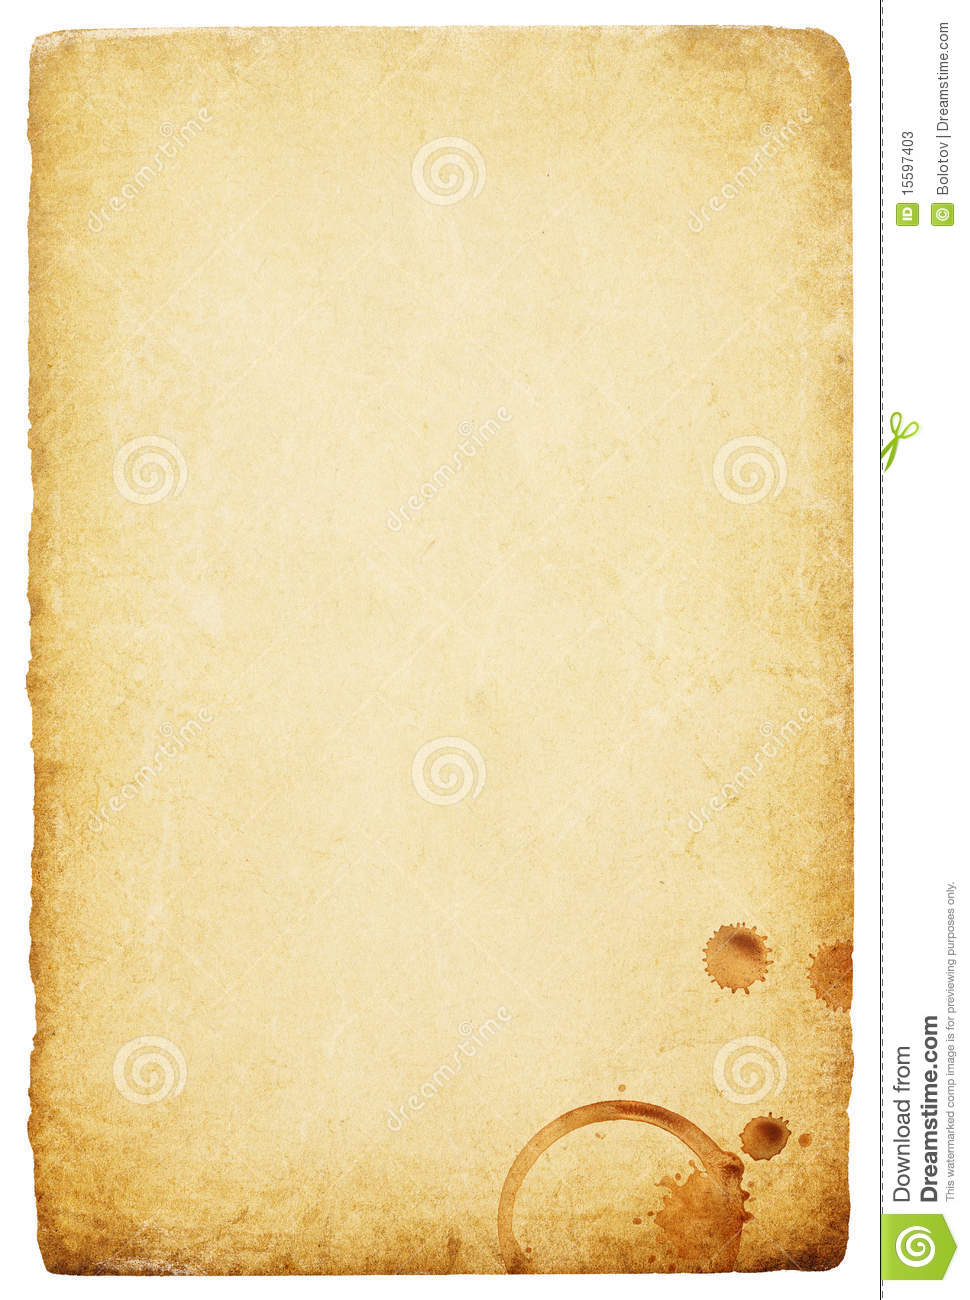 Vintage Paper With Coffee Rings Stain. Stock Photos ...